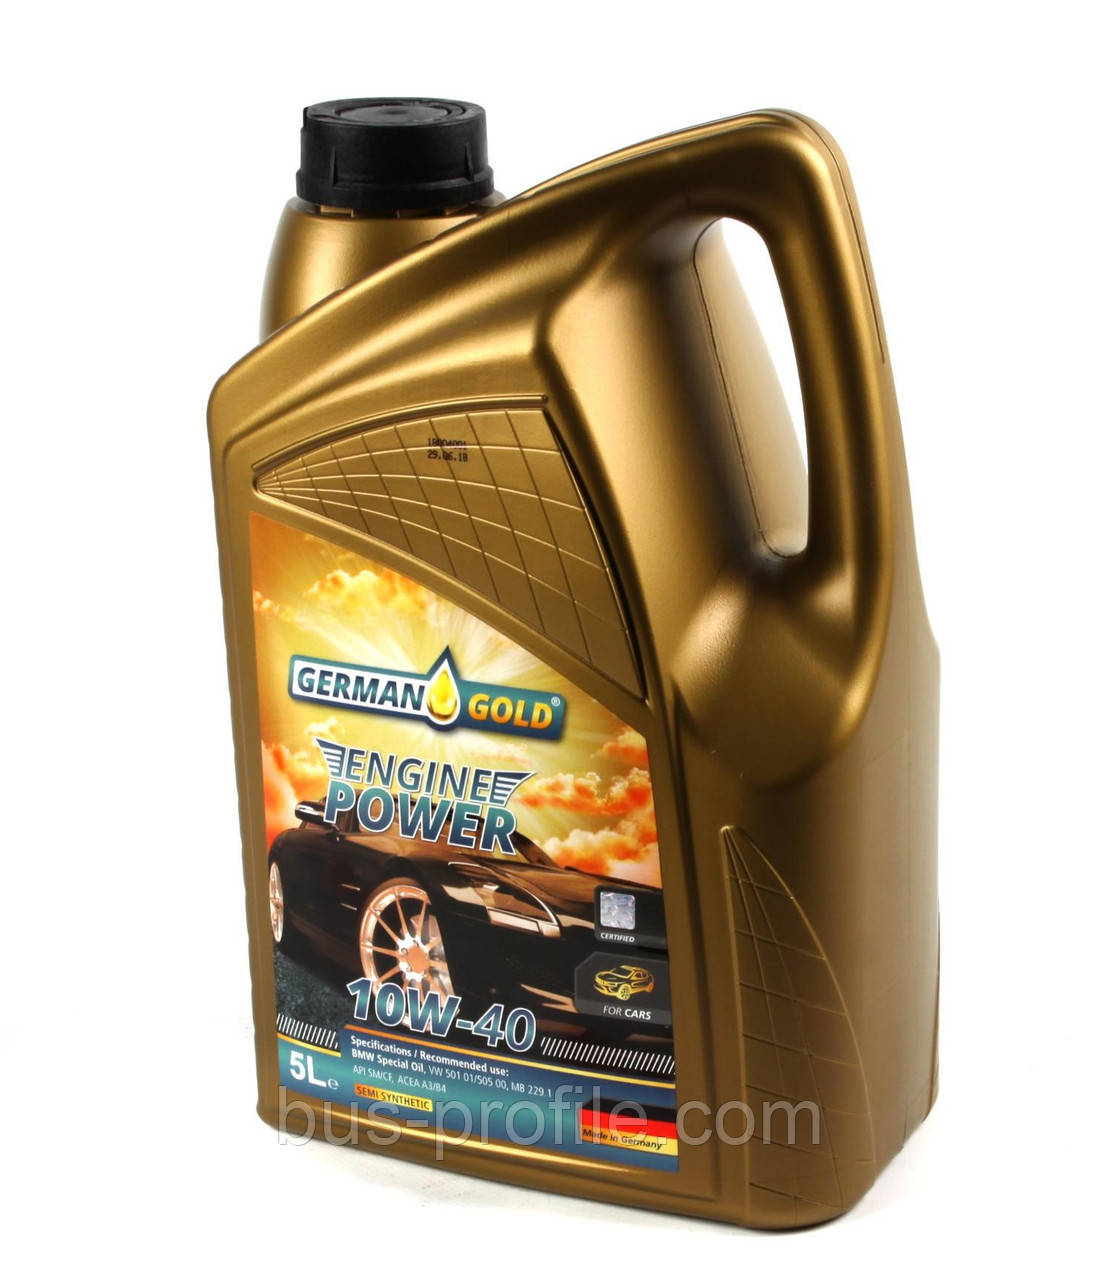 Масло 10W40 Engine Power (5L) (ACEA/A3/B4 API/SM/CF VW/501.01/505.00/MB 229.1/BMW Special Oil) — German Gold